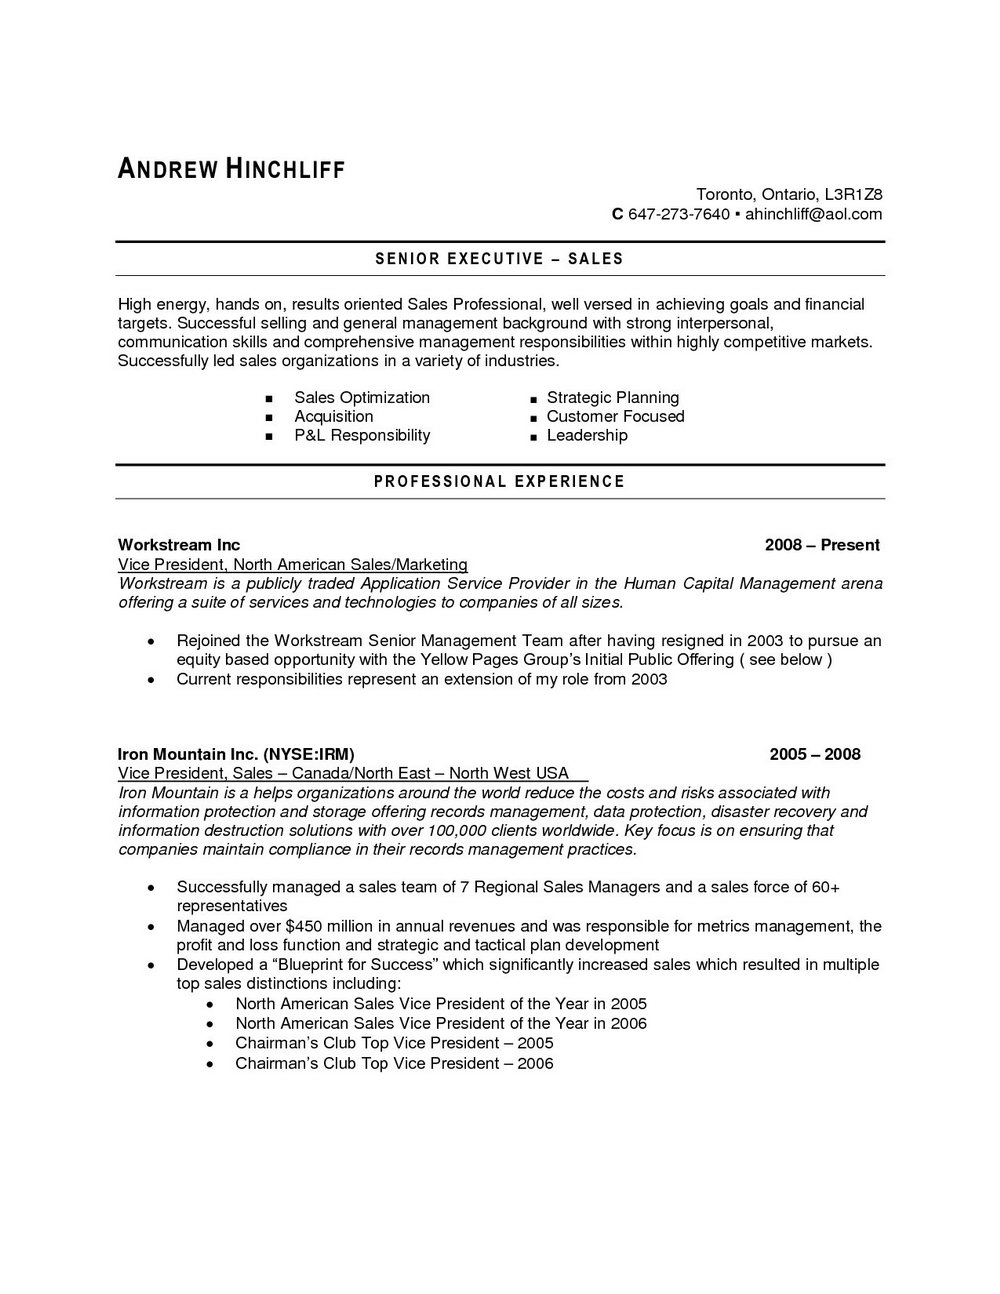 Sample Resume For Jobs In Canada